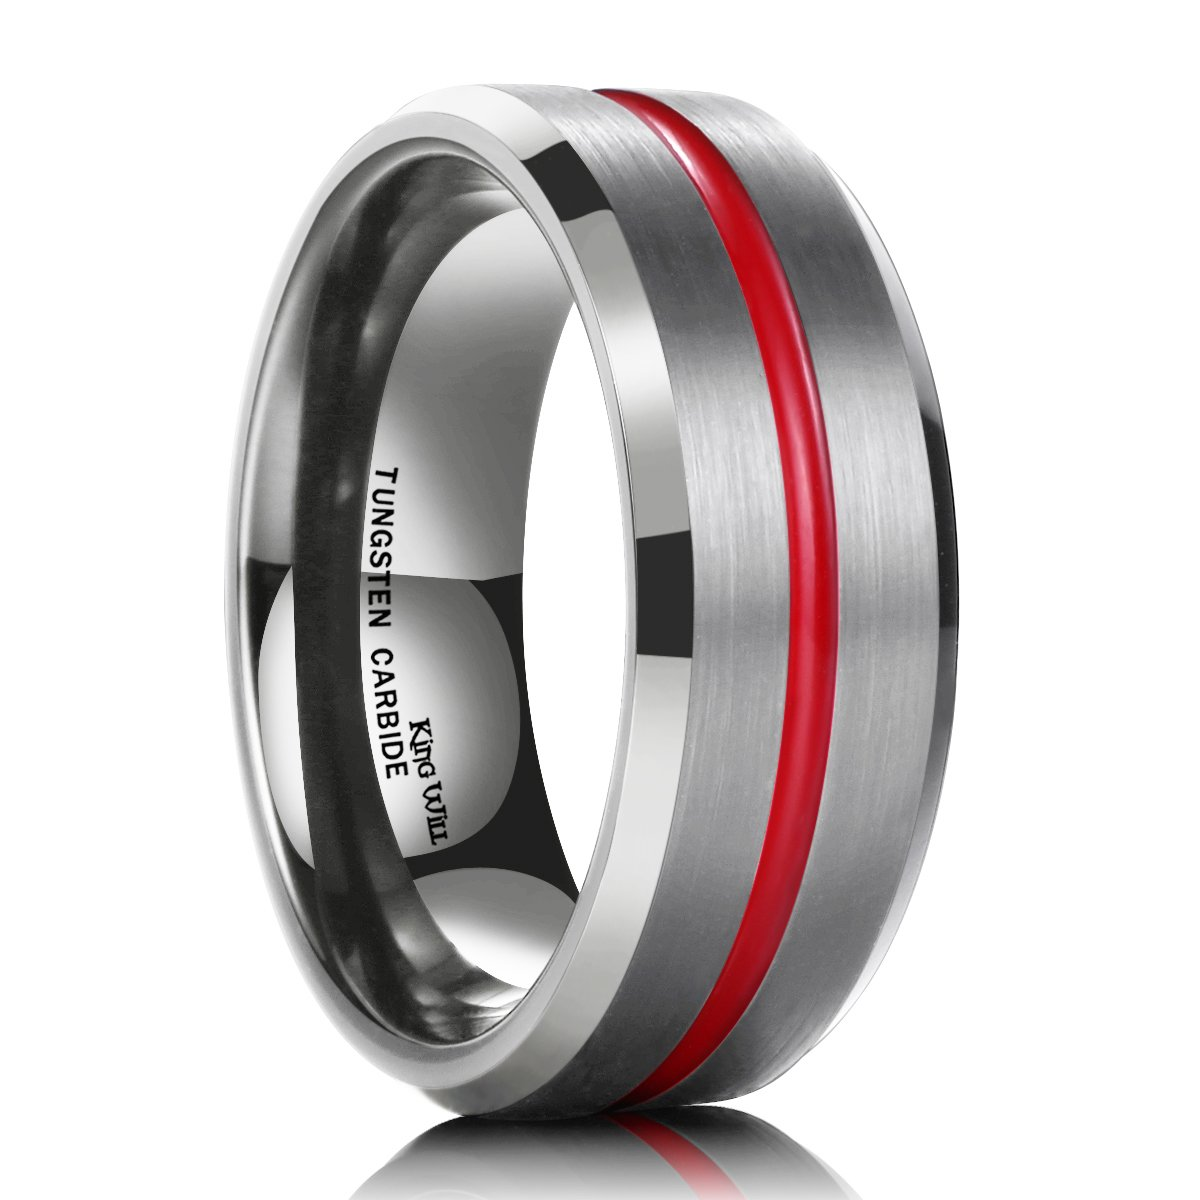 King Will 7mm Thin Red Groove Brushed Tungsten Carbide Wedding Ring Band Comfort Fit(11)